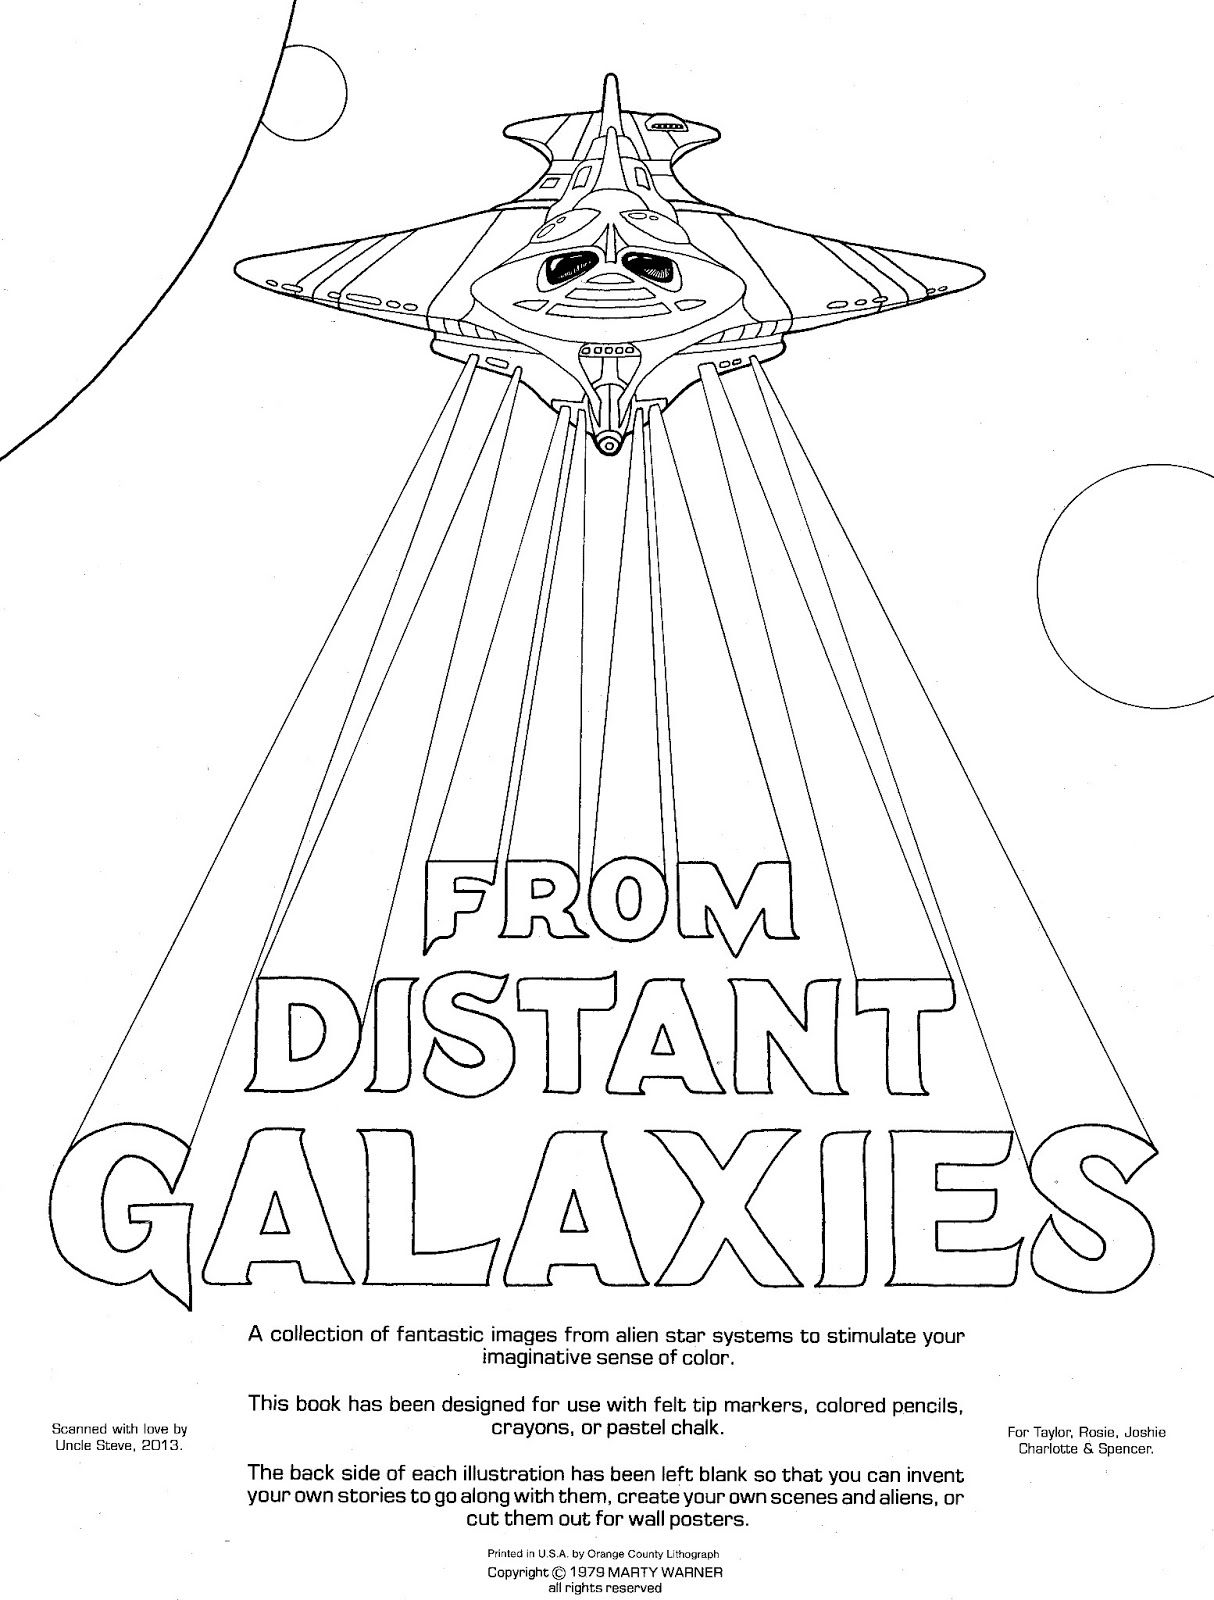 1214x1600 Pin By Sky Walker On From Distant Galaxies Coloring Book By Marty